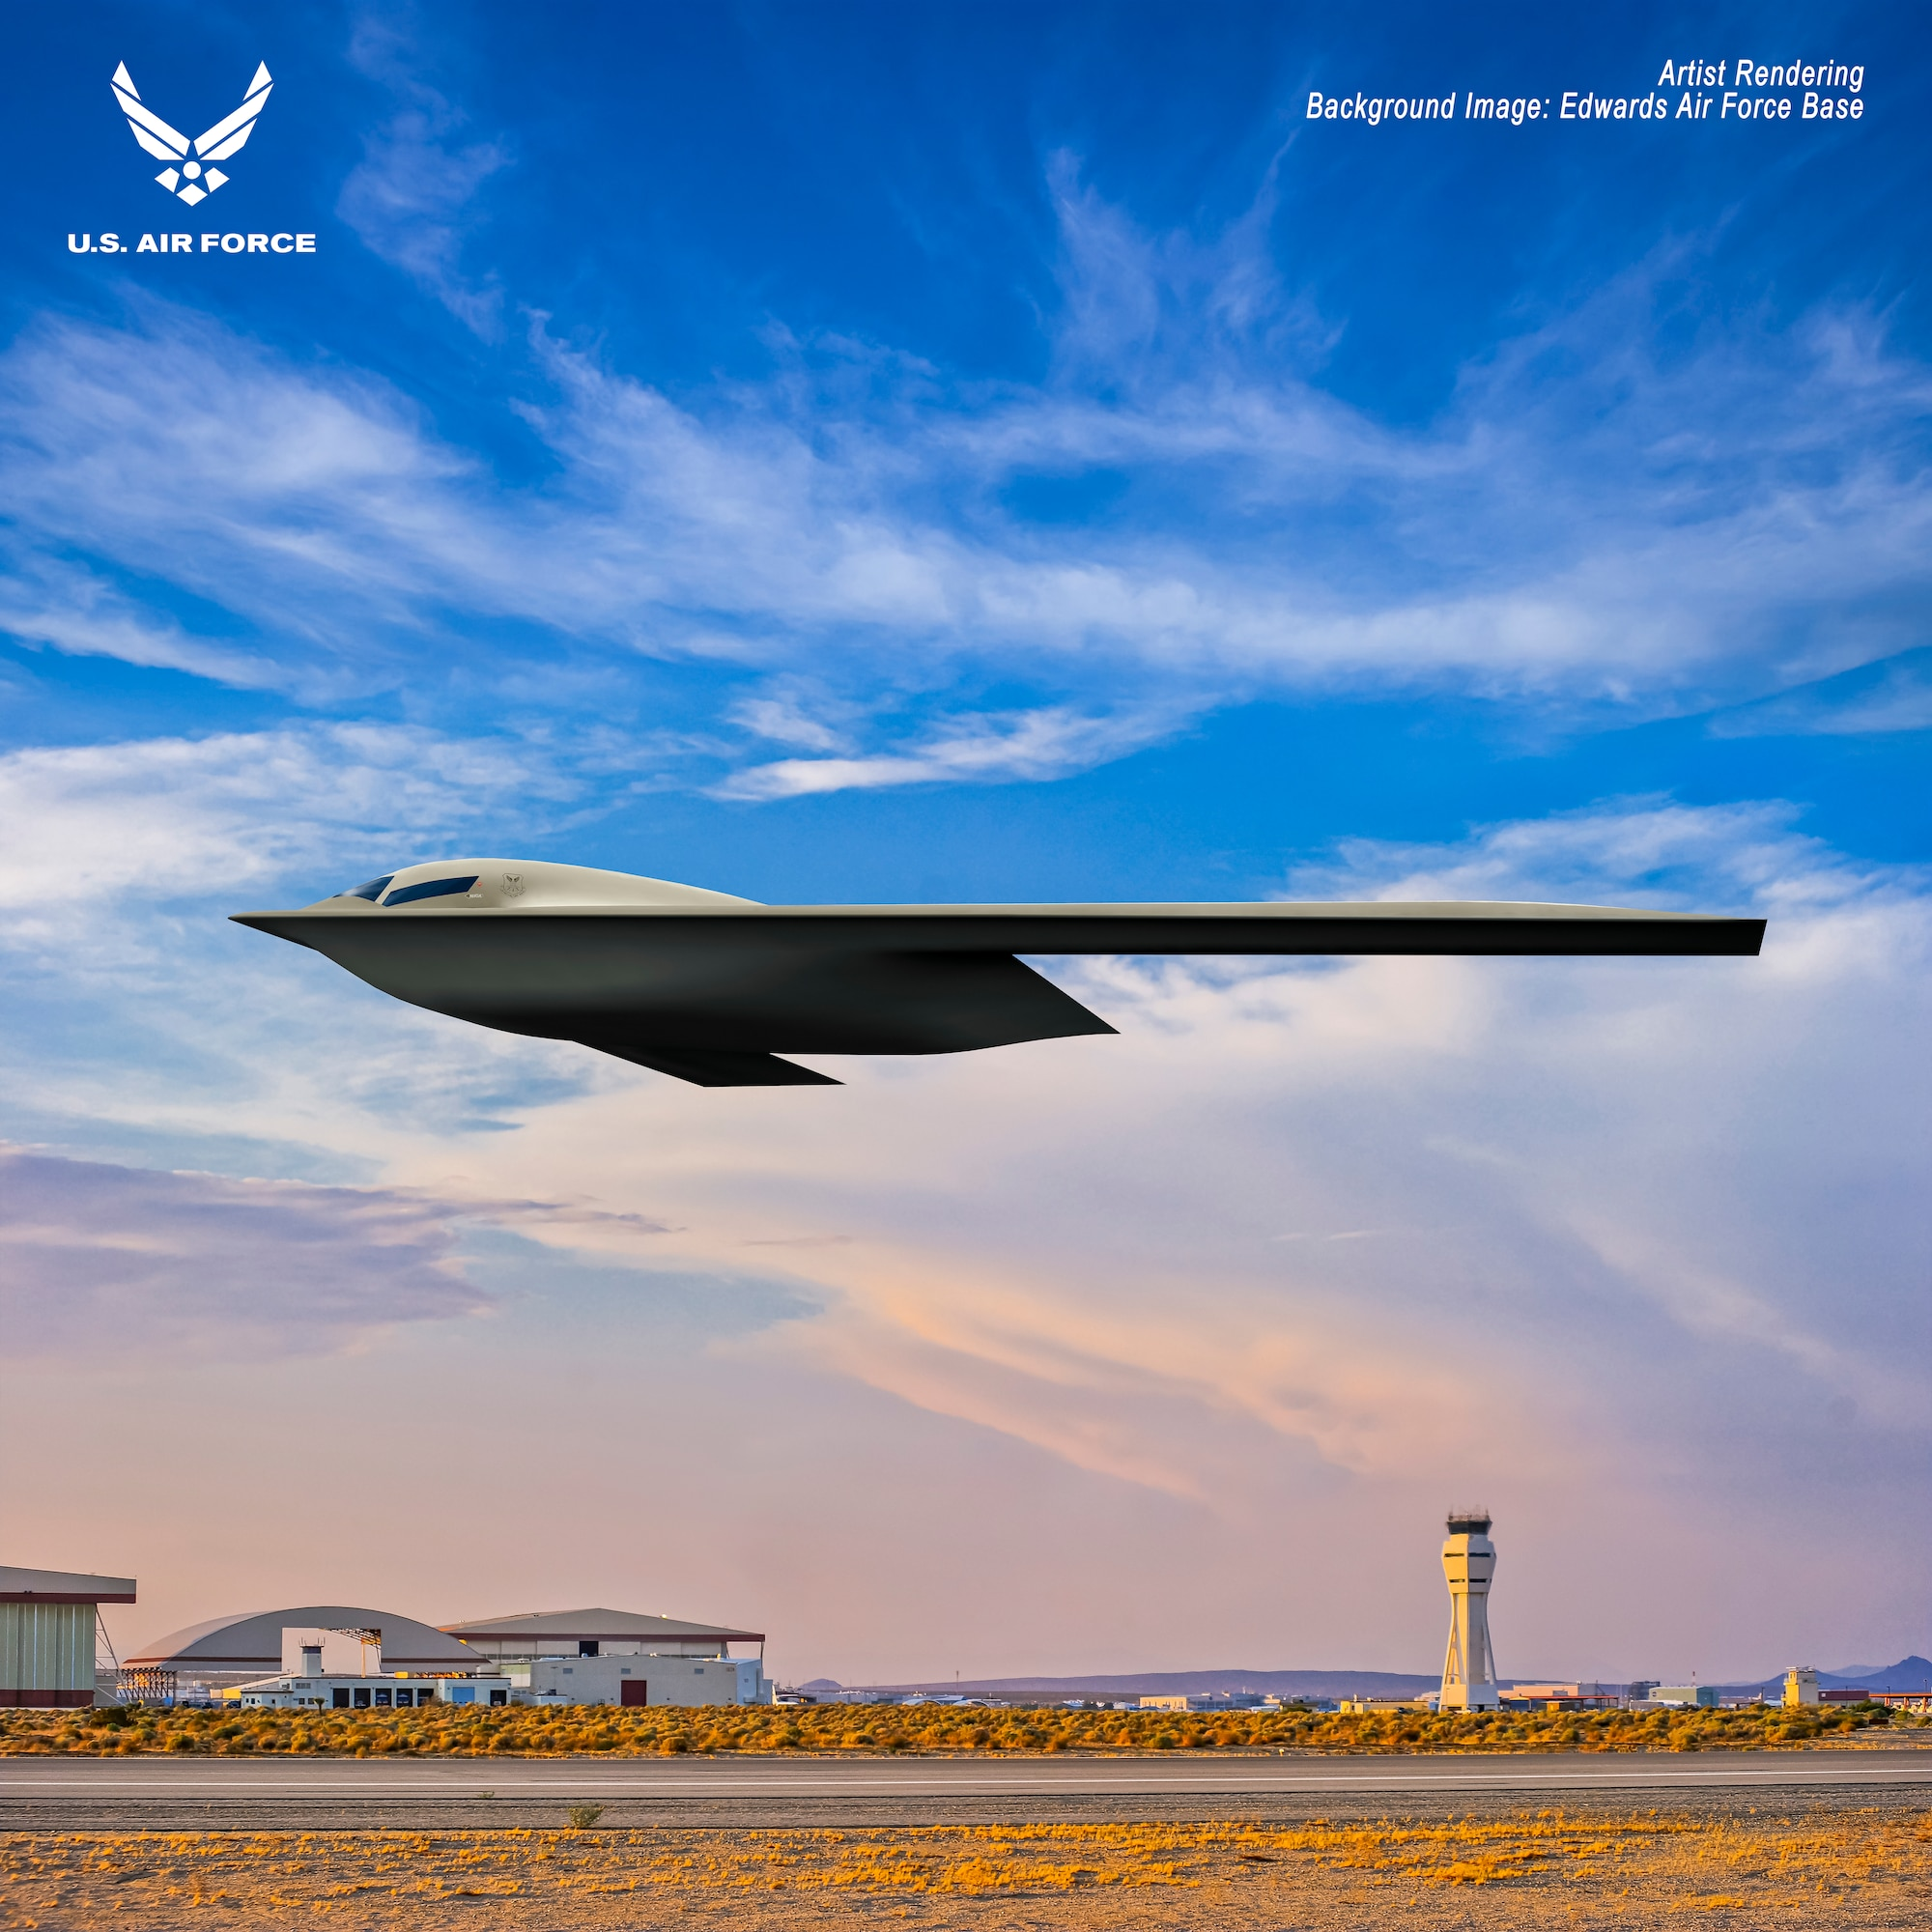 Shown is a B-21 Raider artist rendering graphic. The rendering highlights the future stealth bomber with Edwards Air Force Base, Calif., as the backdrop. Designed to perform long range conventional and nuclear missions and to operate in tomorrow's high end threat environment, the B-21 will be a visible and flexible component of the nuclear triad. (U.S. Air Force graphic)